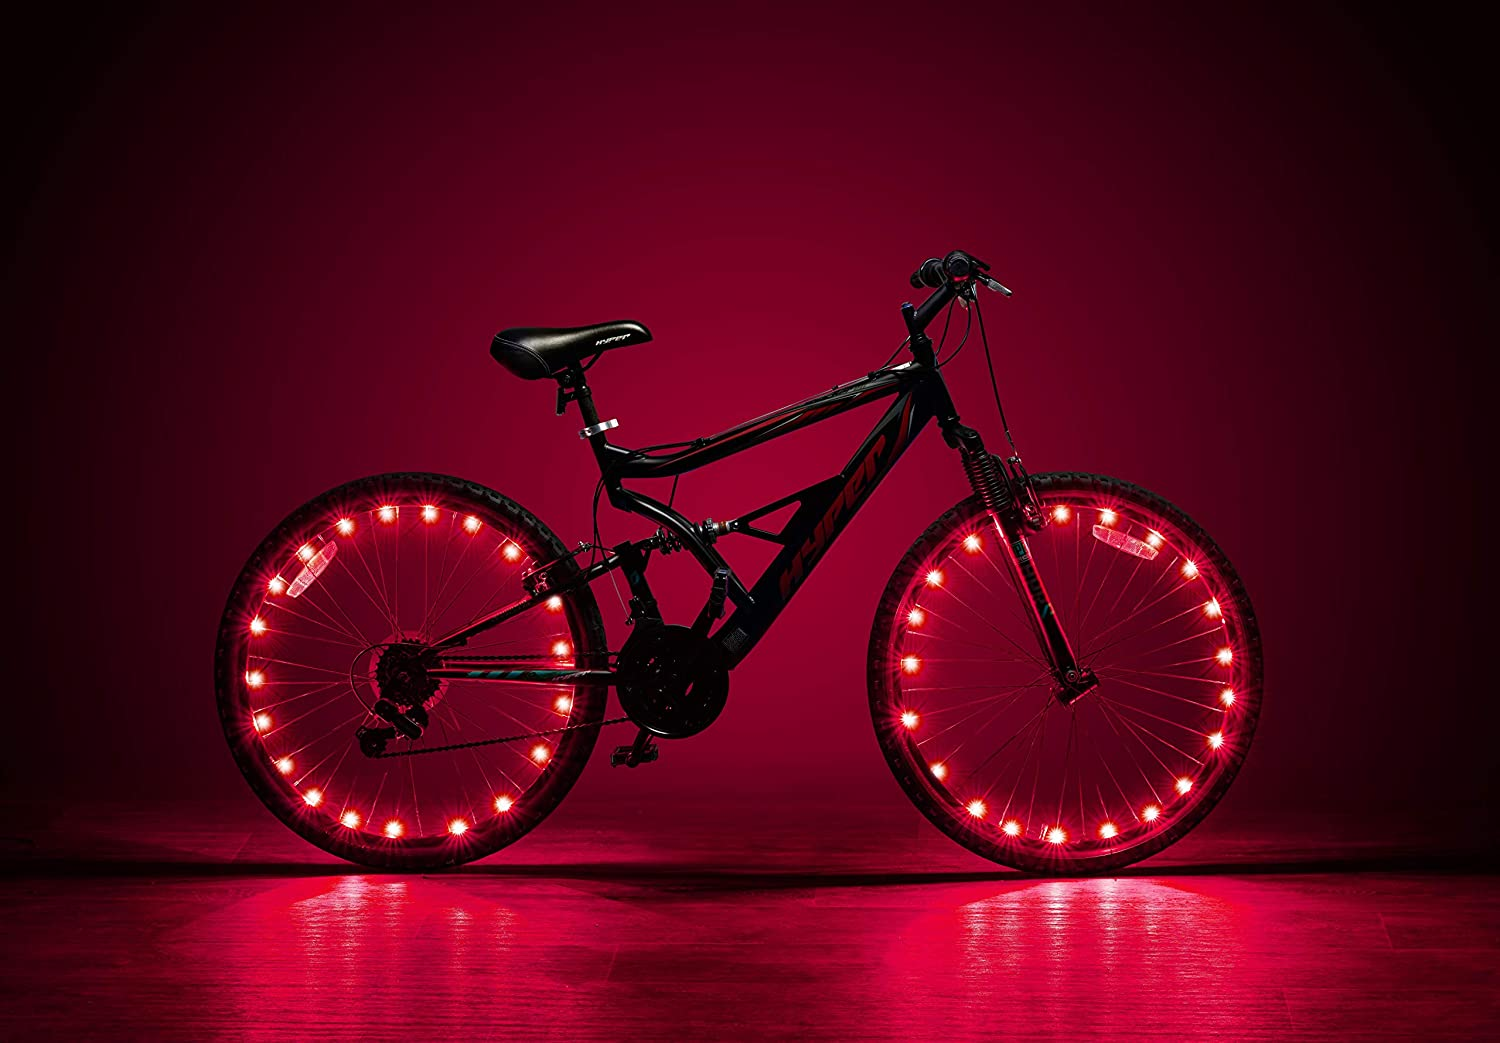 LED Bike Wheel Lights – 2 Tire Pack Waterproof Tire Lights Very Bright Tire Lights – Perfect for Safety and Fun for Kids and Adults